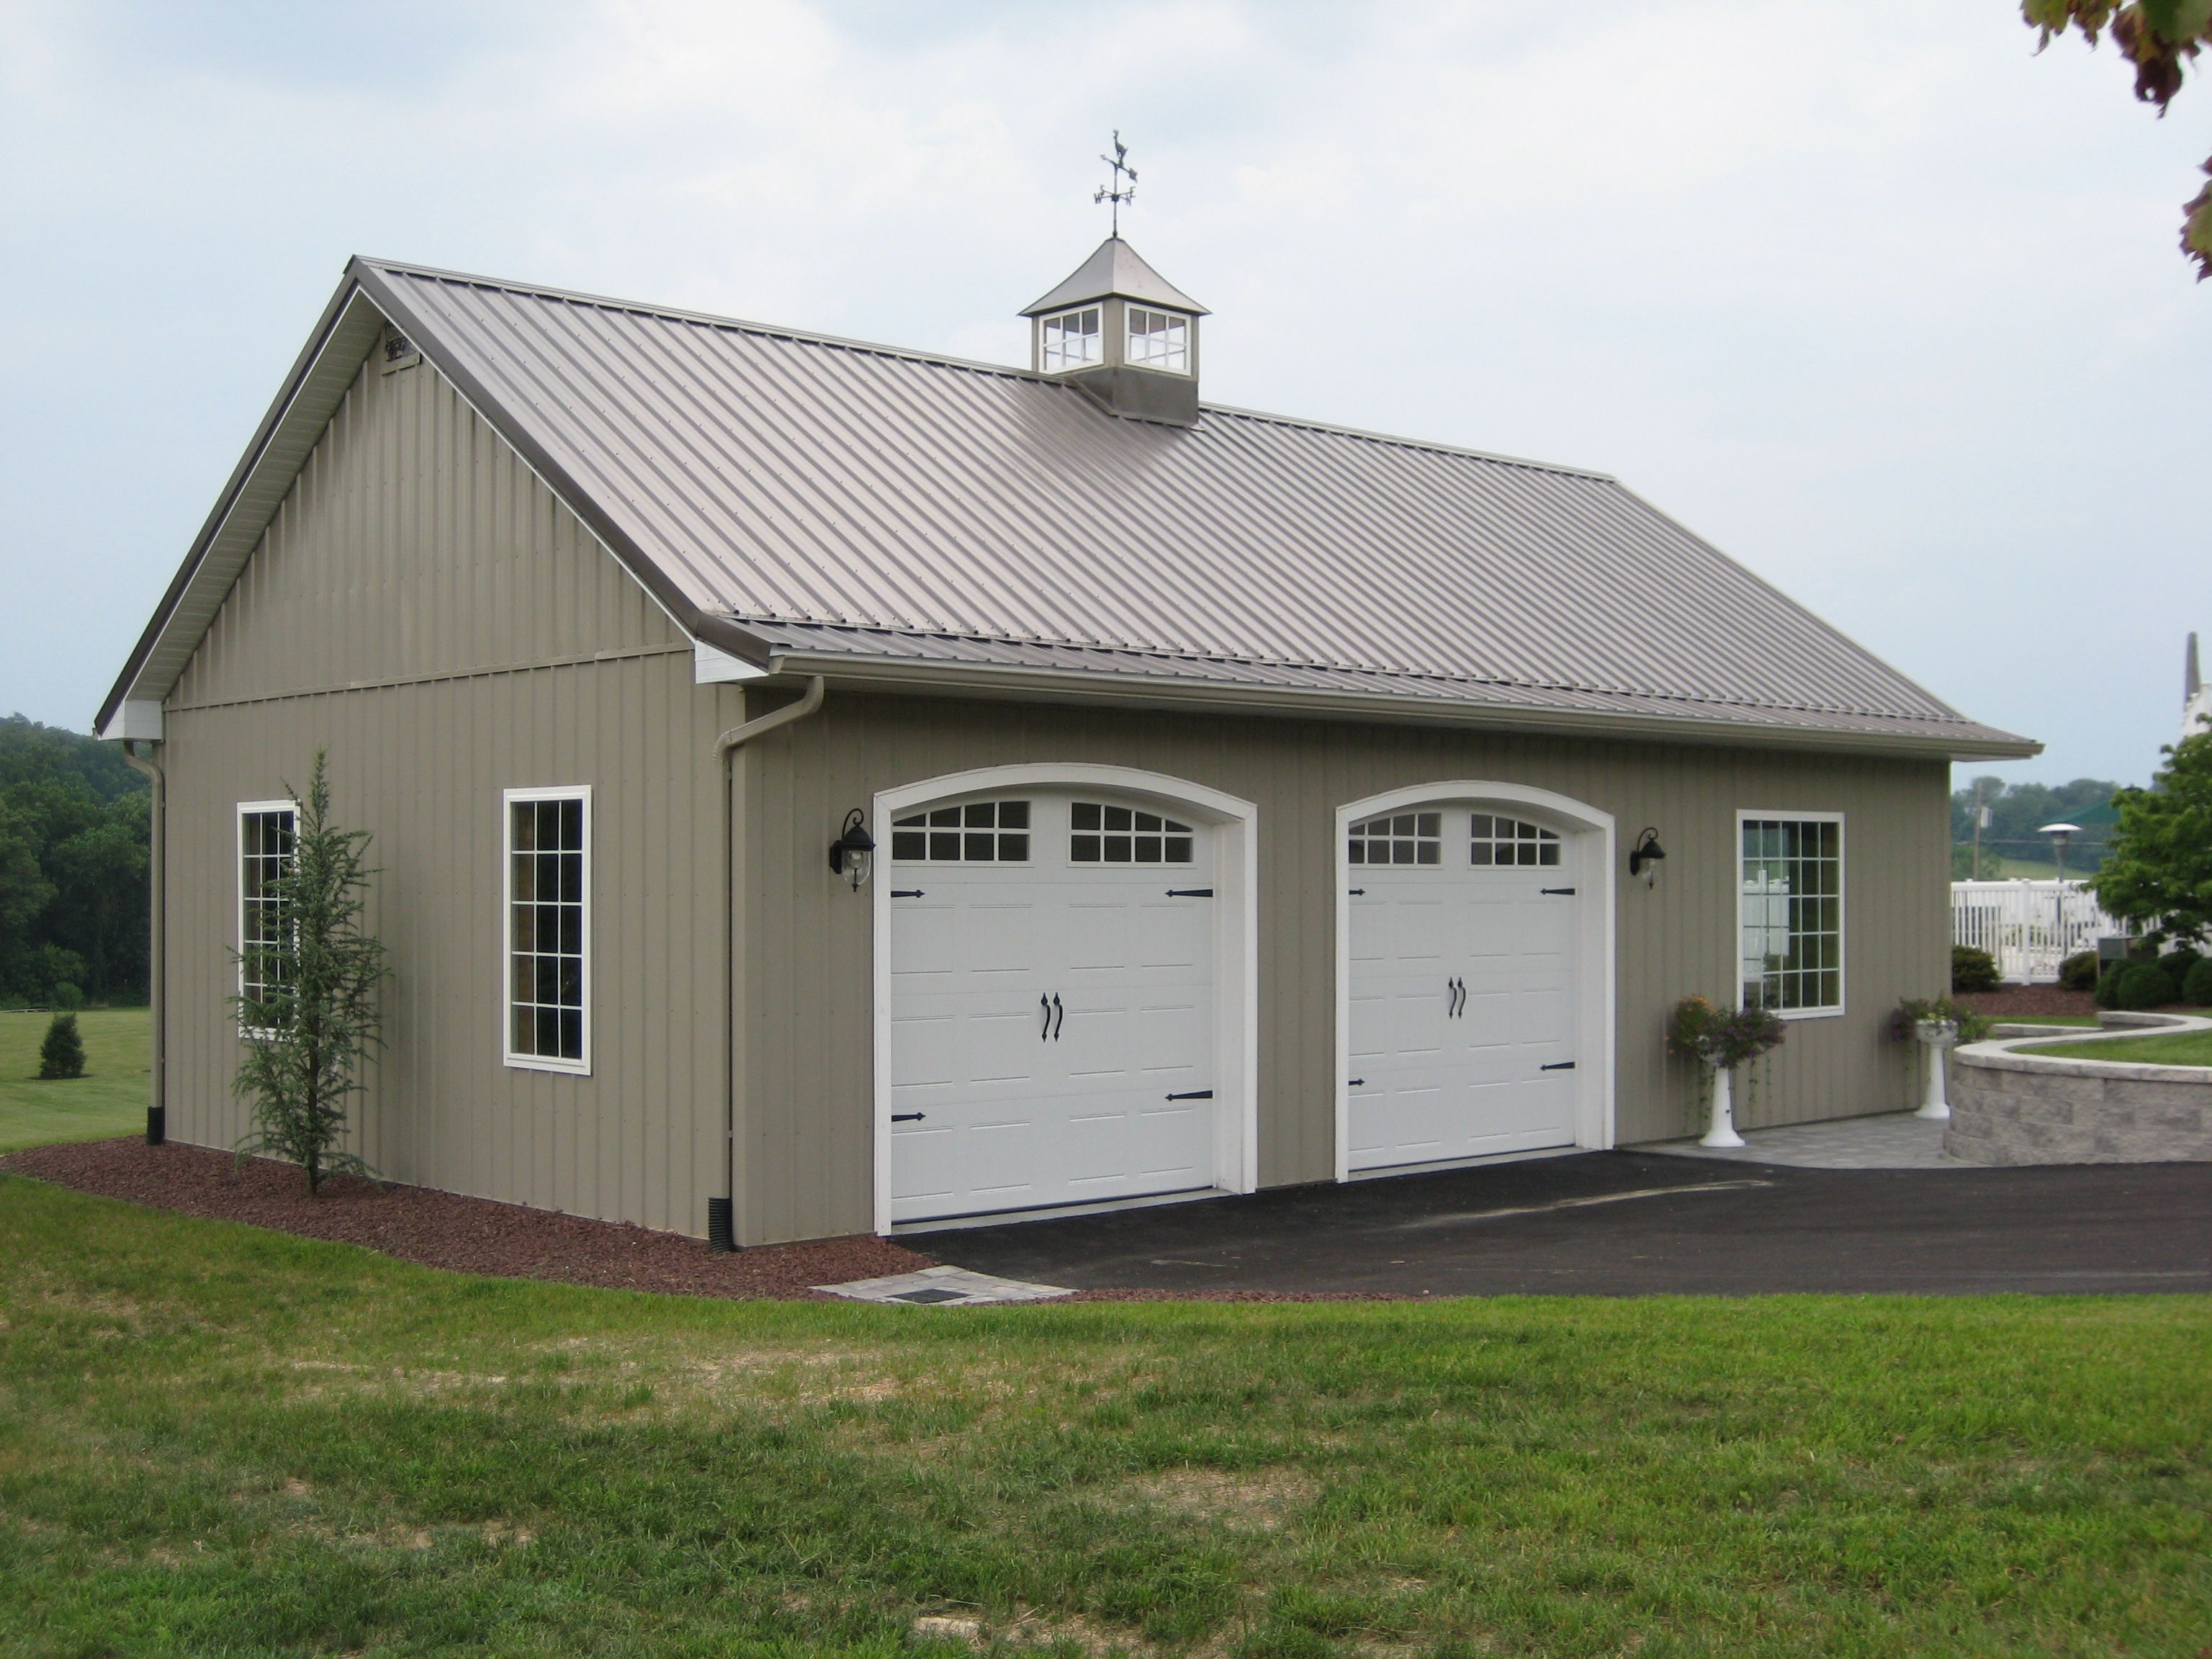 Best 25 pole barn garage ideas on pinterest pole barns for Barn construction designs